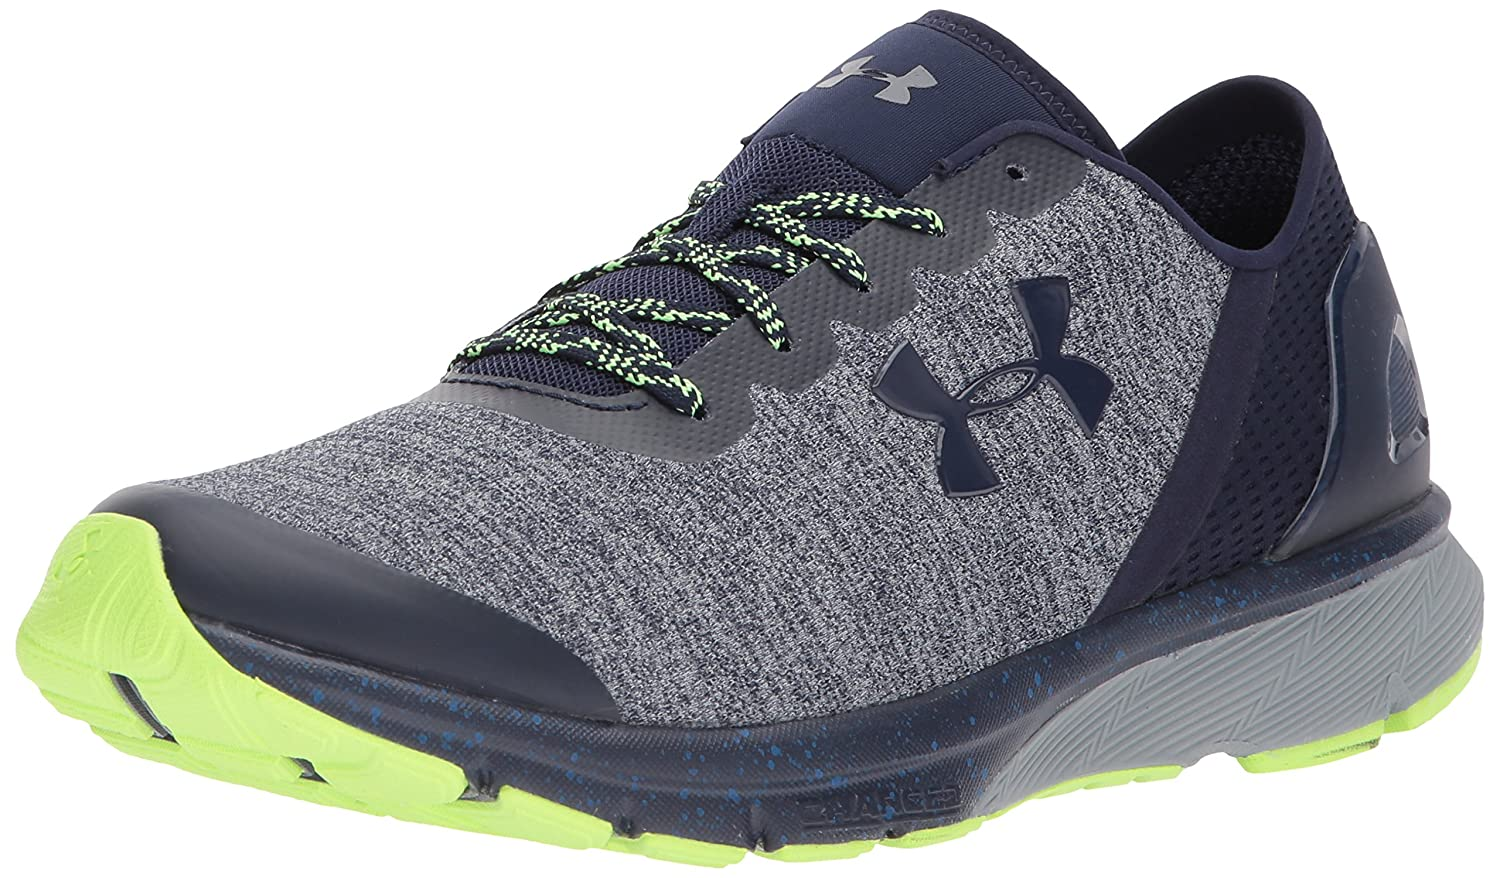 Under Armour Men's Charged Escape Running Shoe B0758JB1VH 7.5 M US|Midnight Navy/Royal